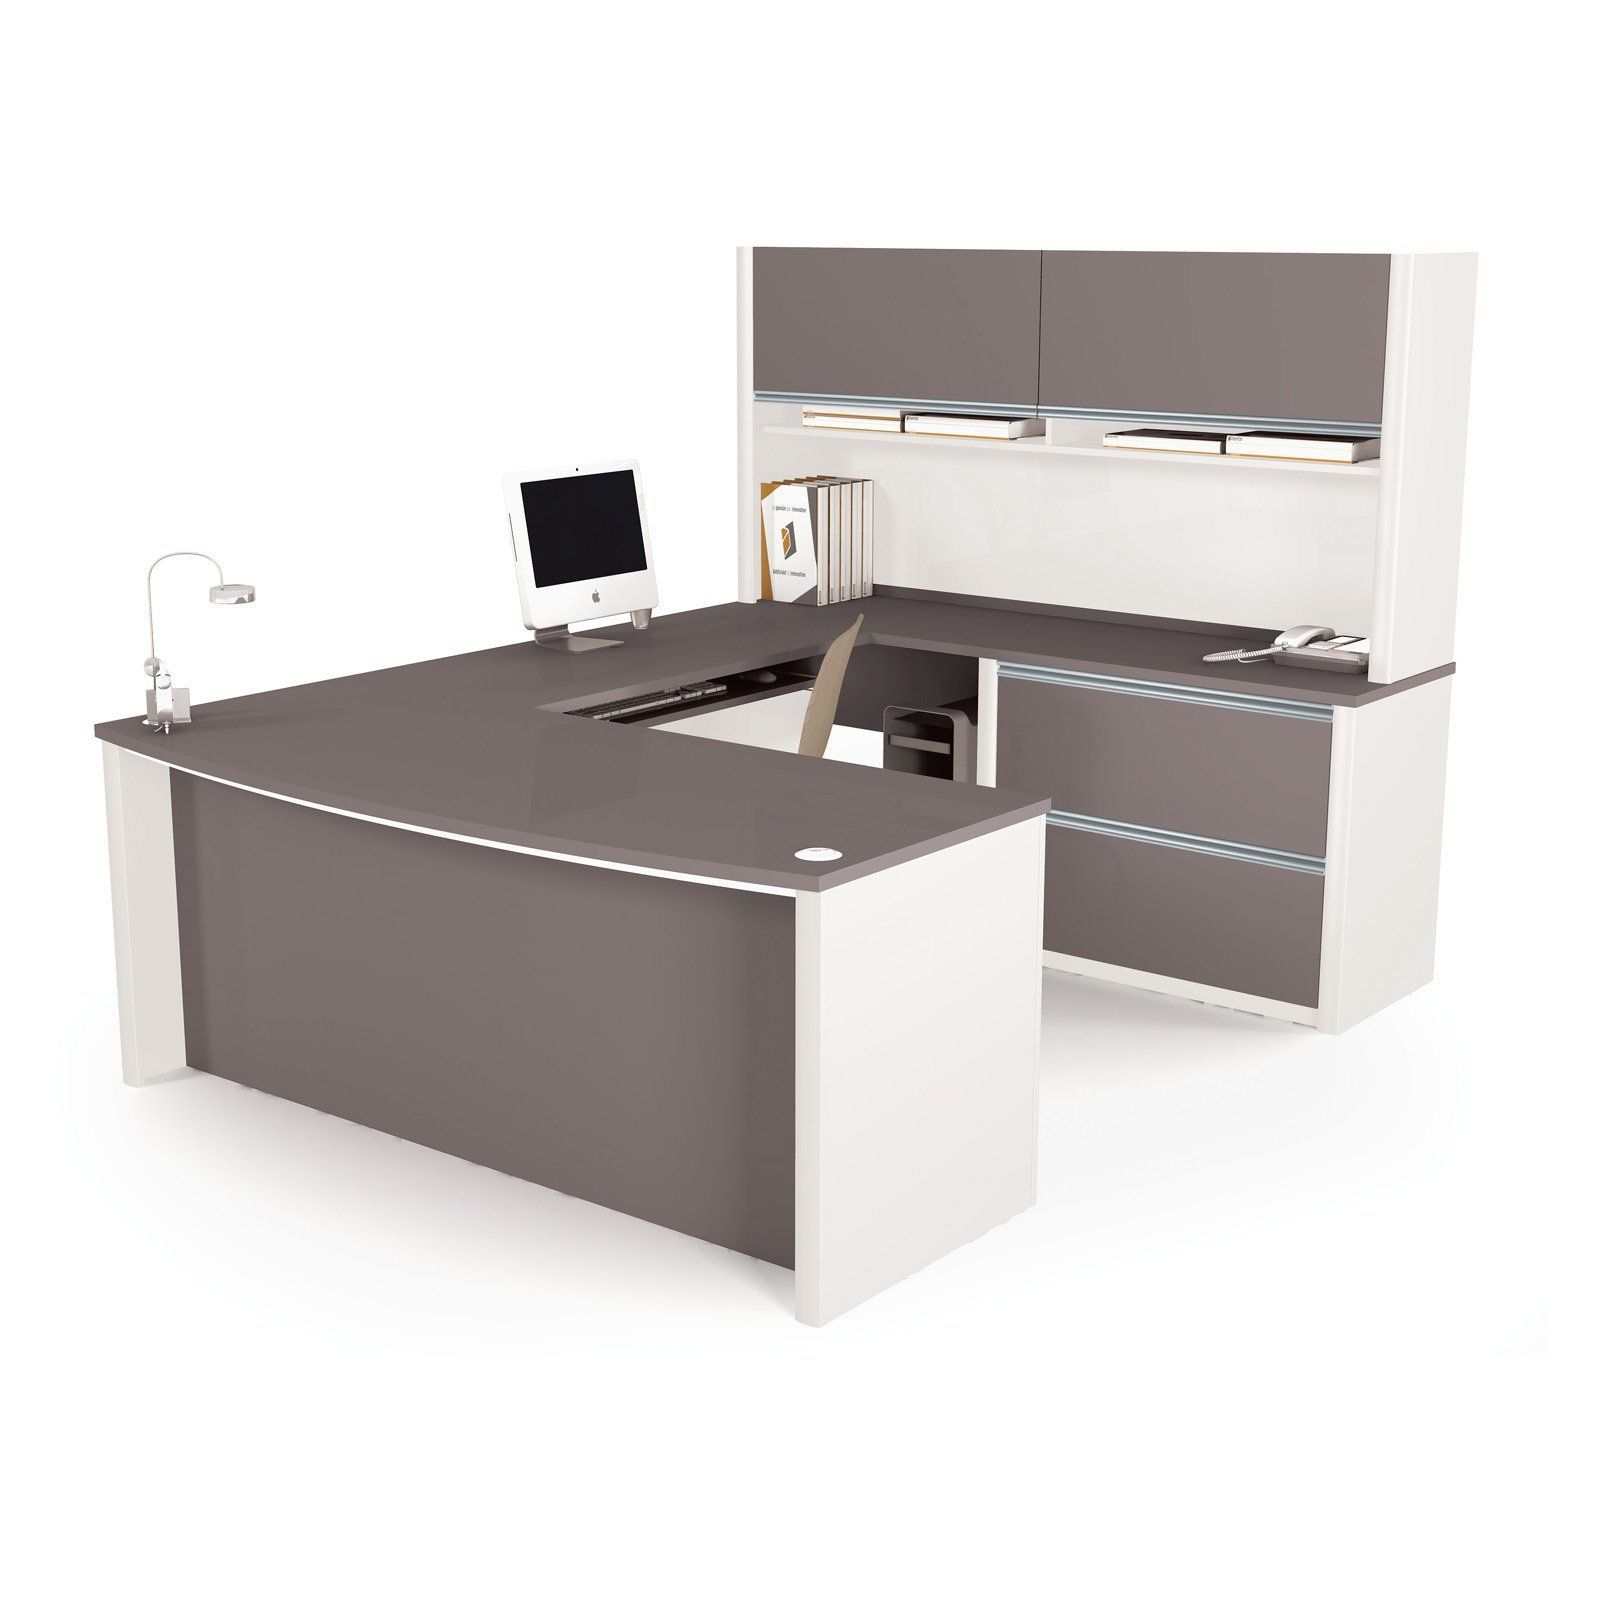 today bestar garden hutch shipping with free connexion desk merritt u product overstock shape home